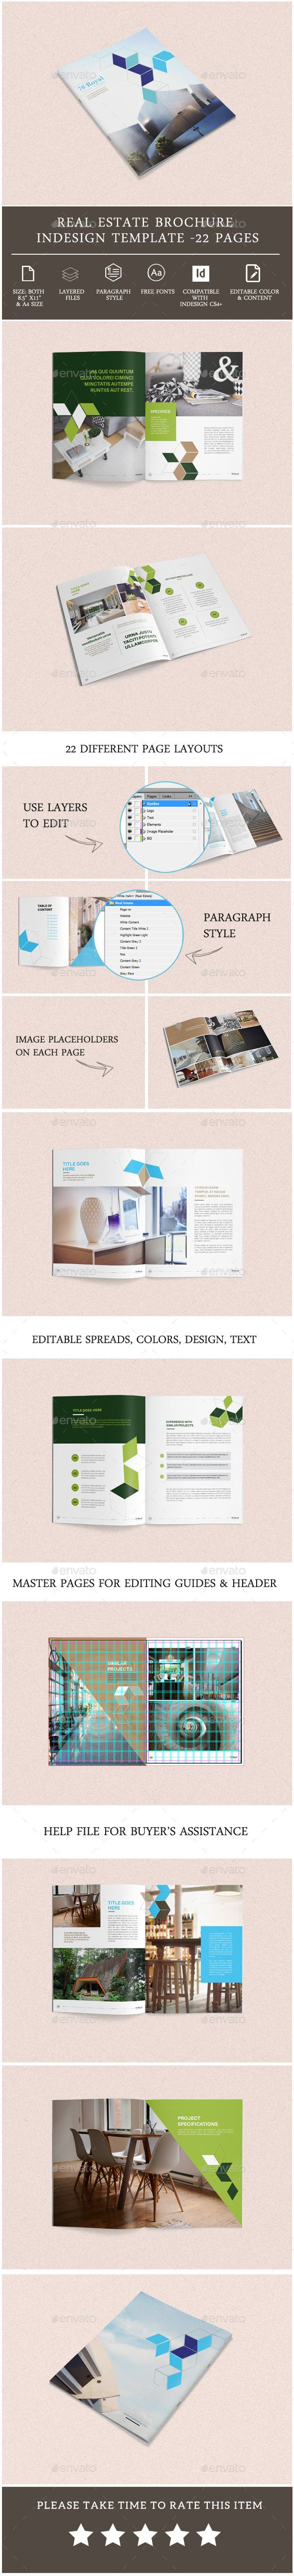 Real Estate Brochure Template  Brochure Template Brochures And